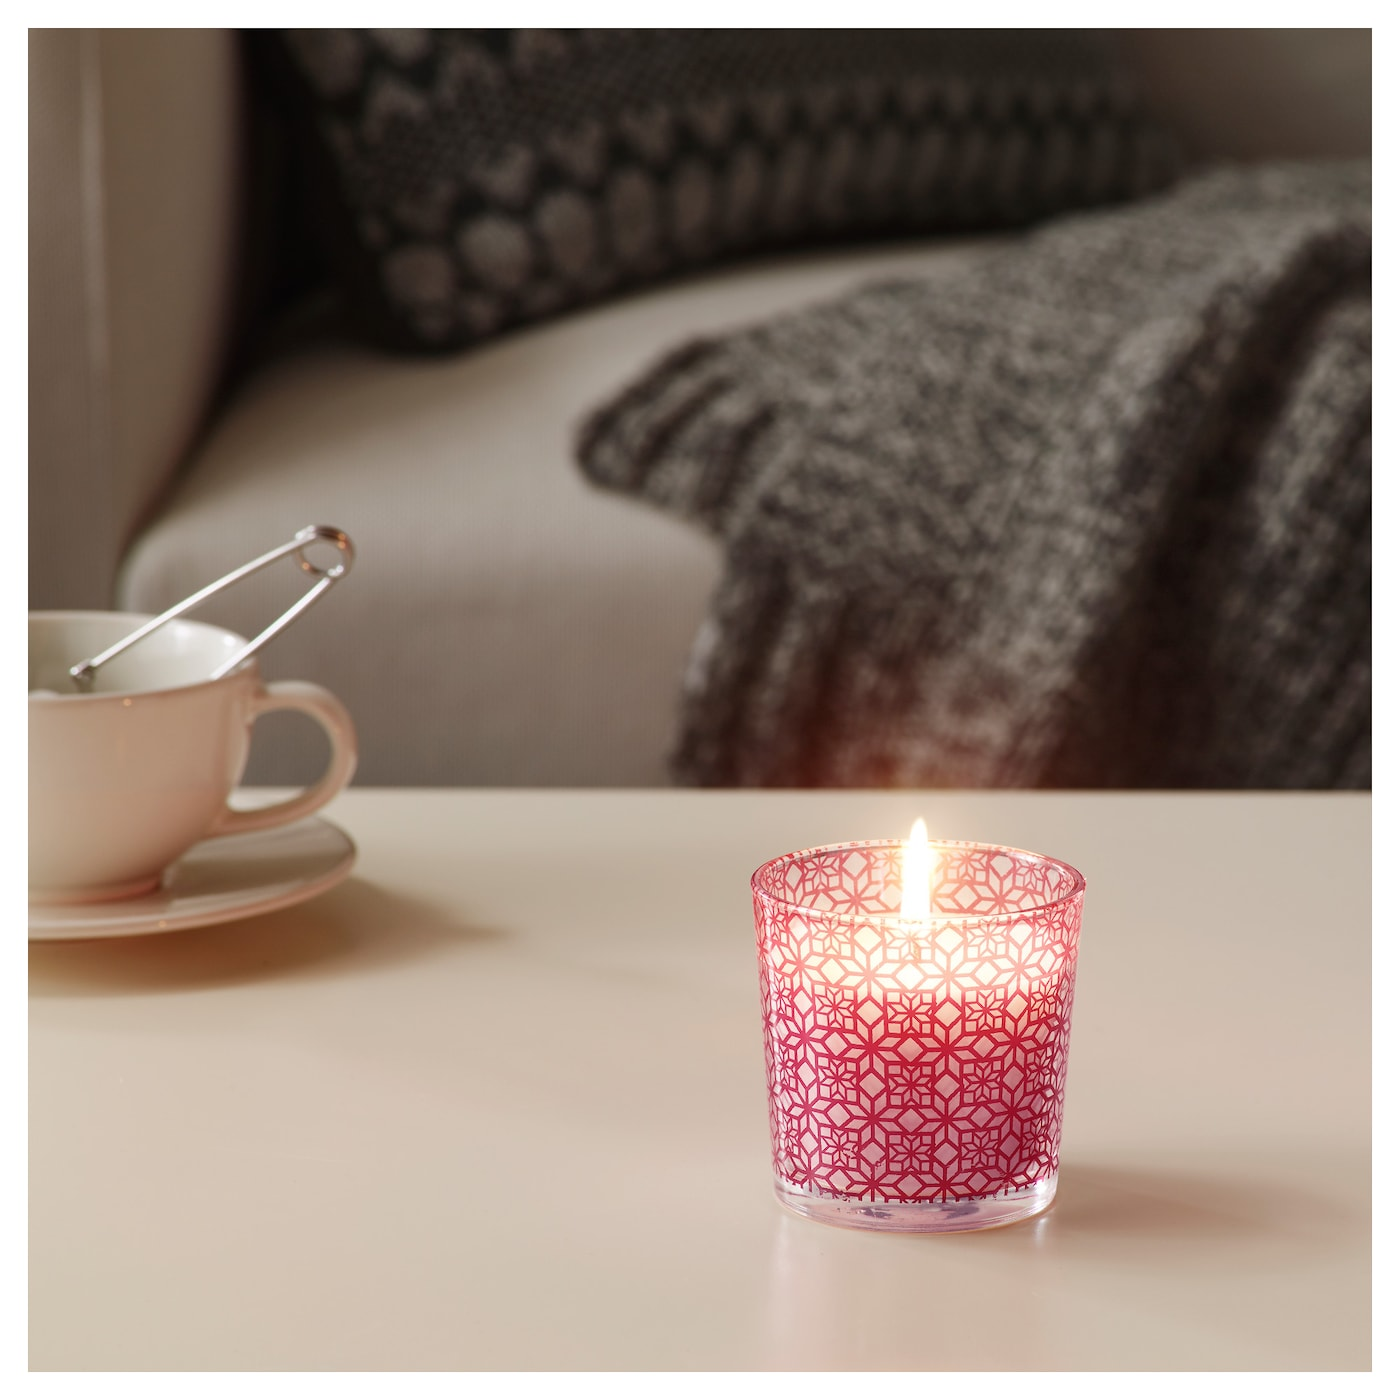 IKEA VINTER 2017 scented candle in glass A refreshing and distinct scent of a wintry sea.